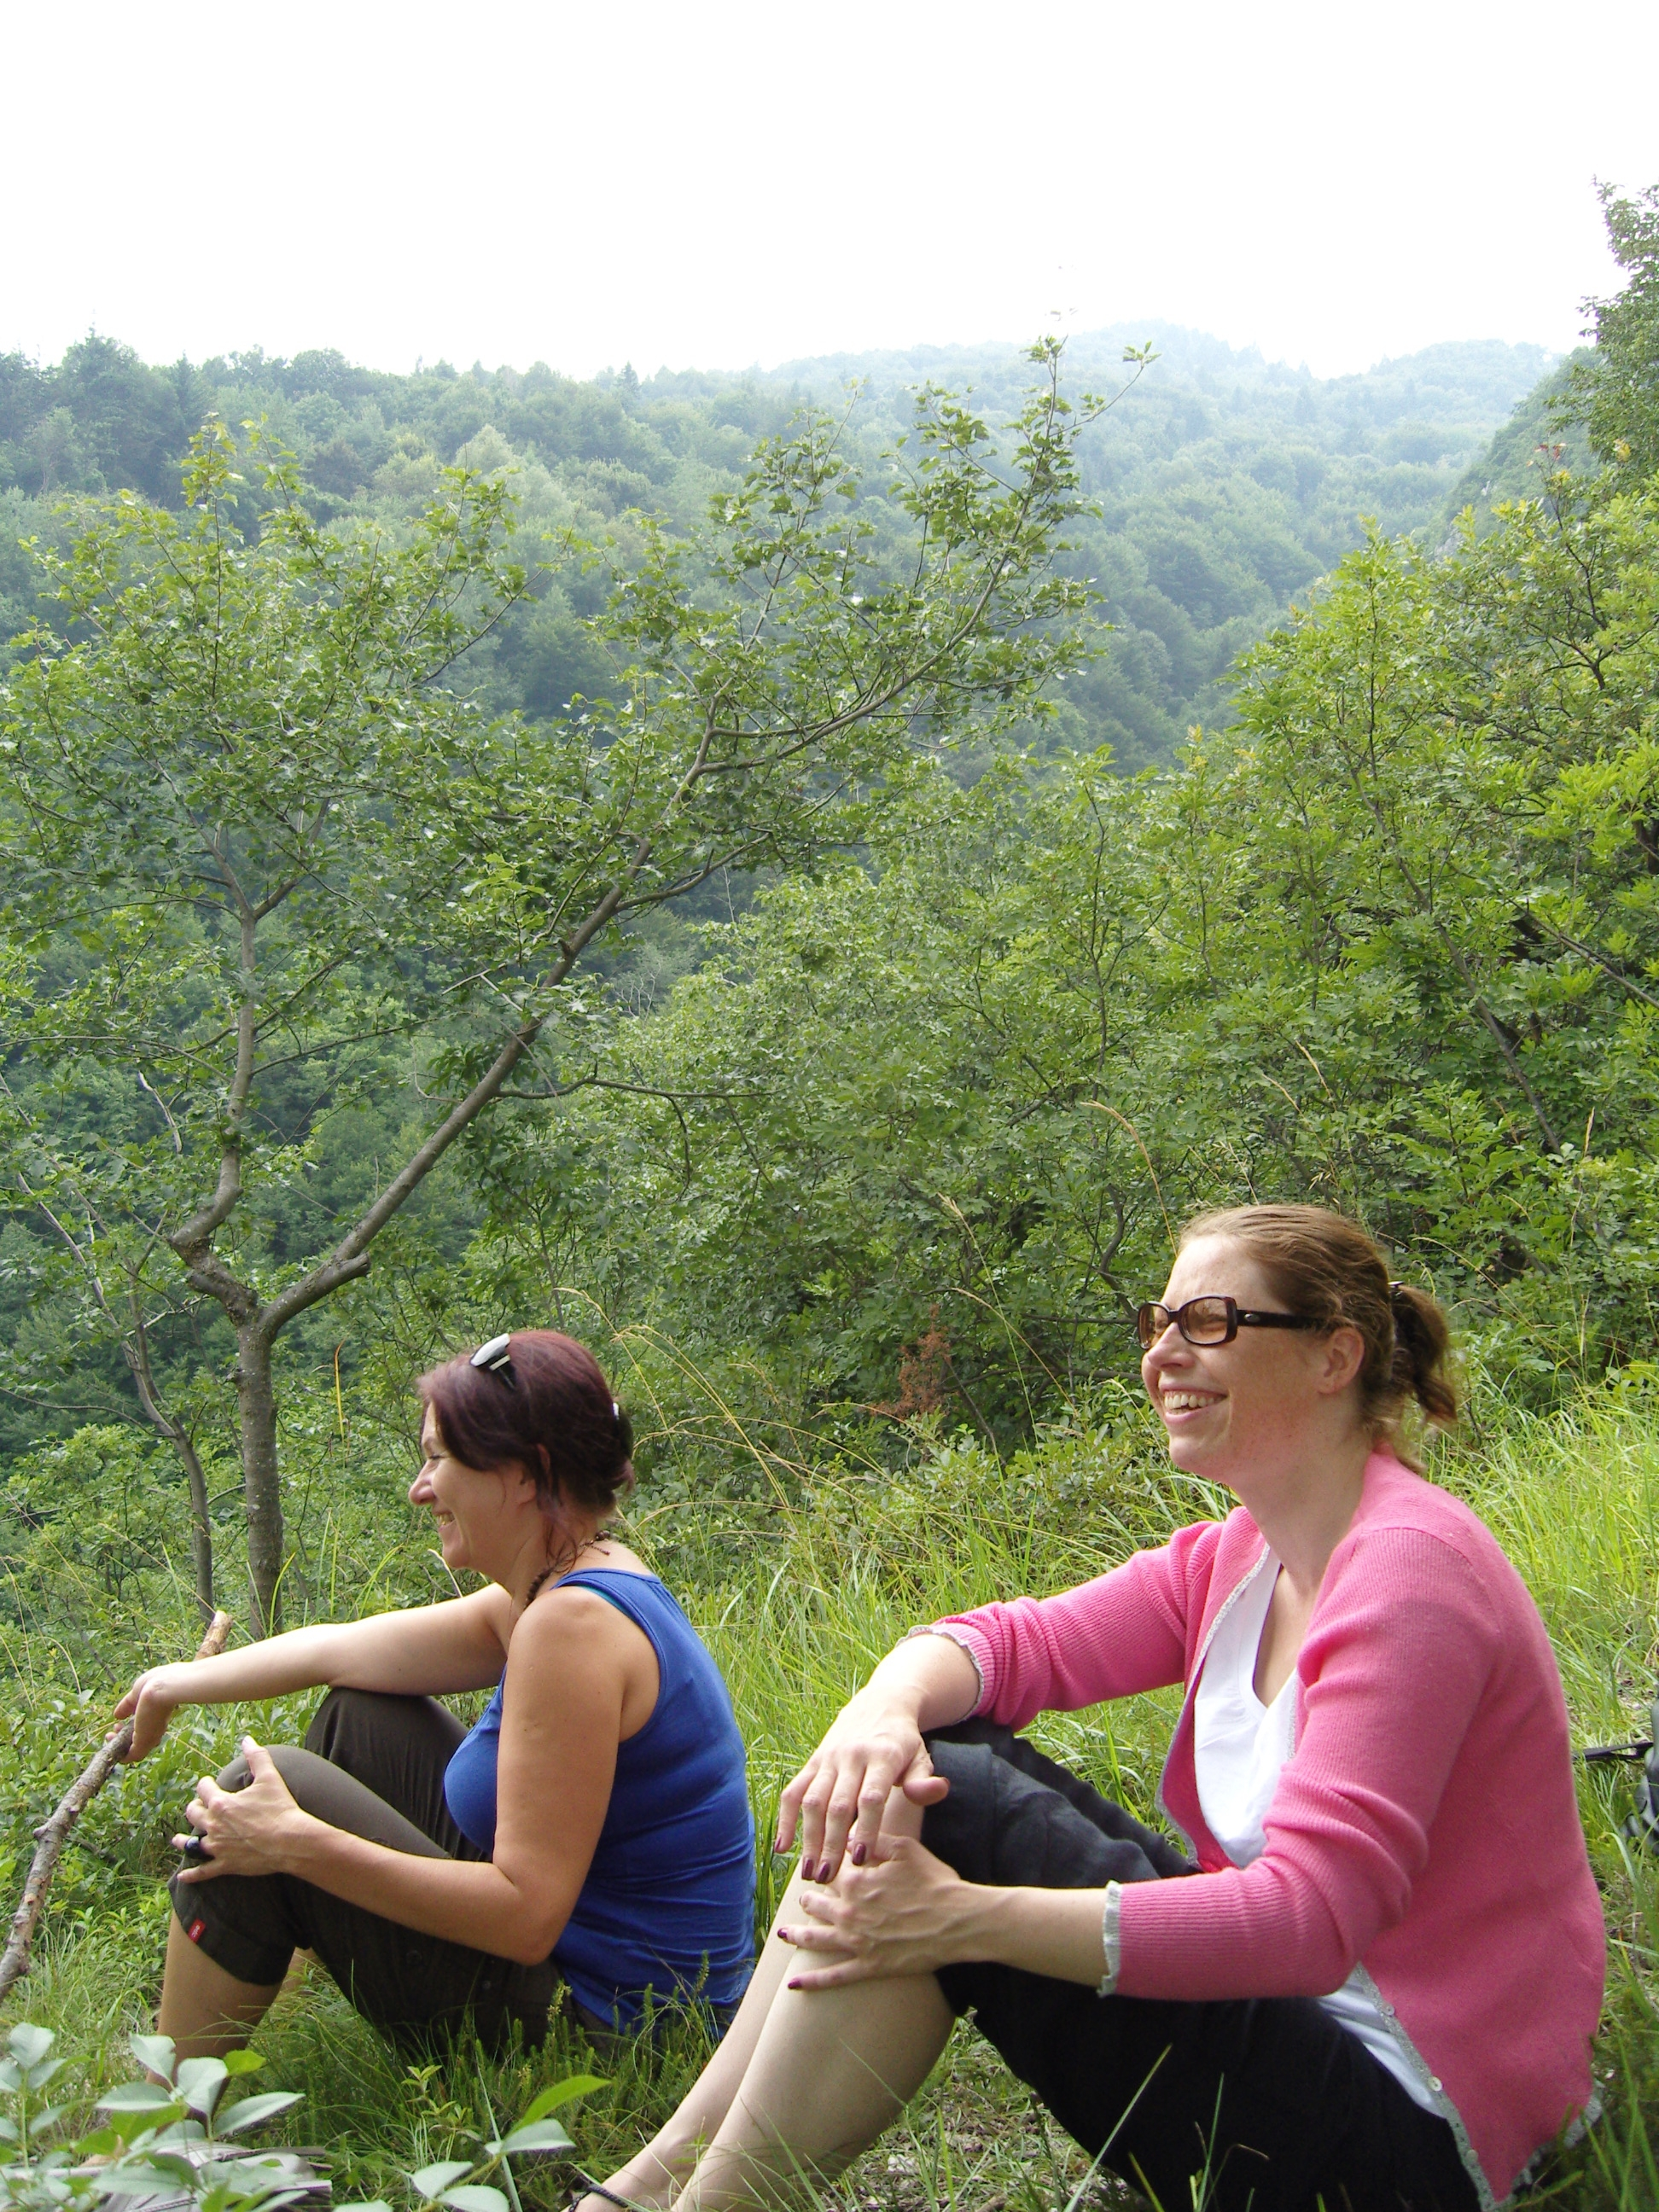 Hiking trip after the biennale with Solvita Krese (left).